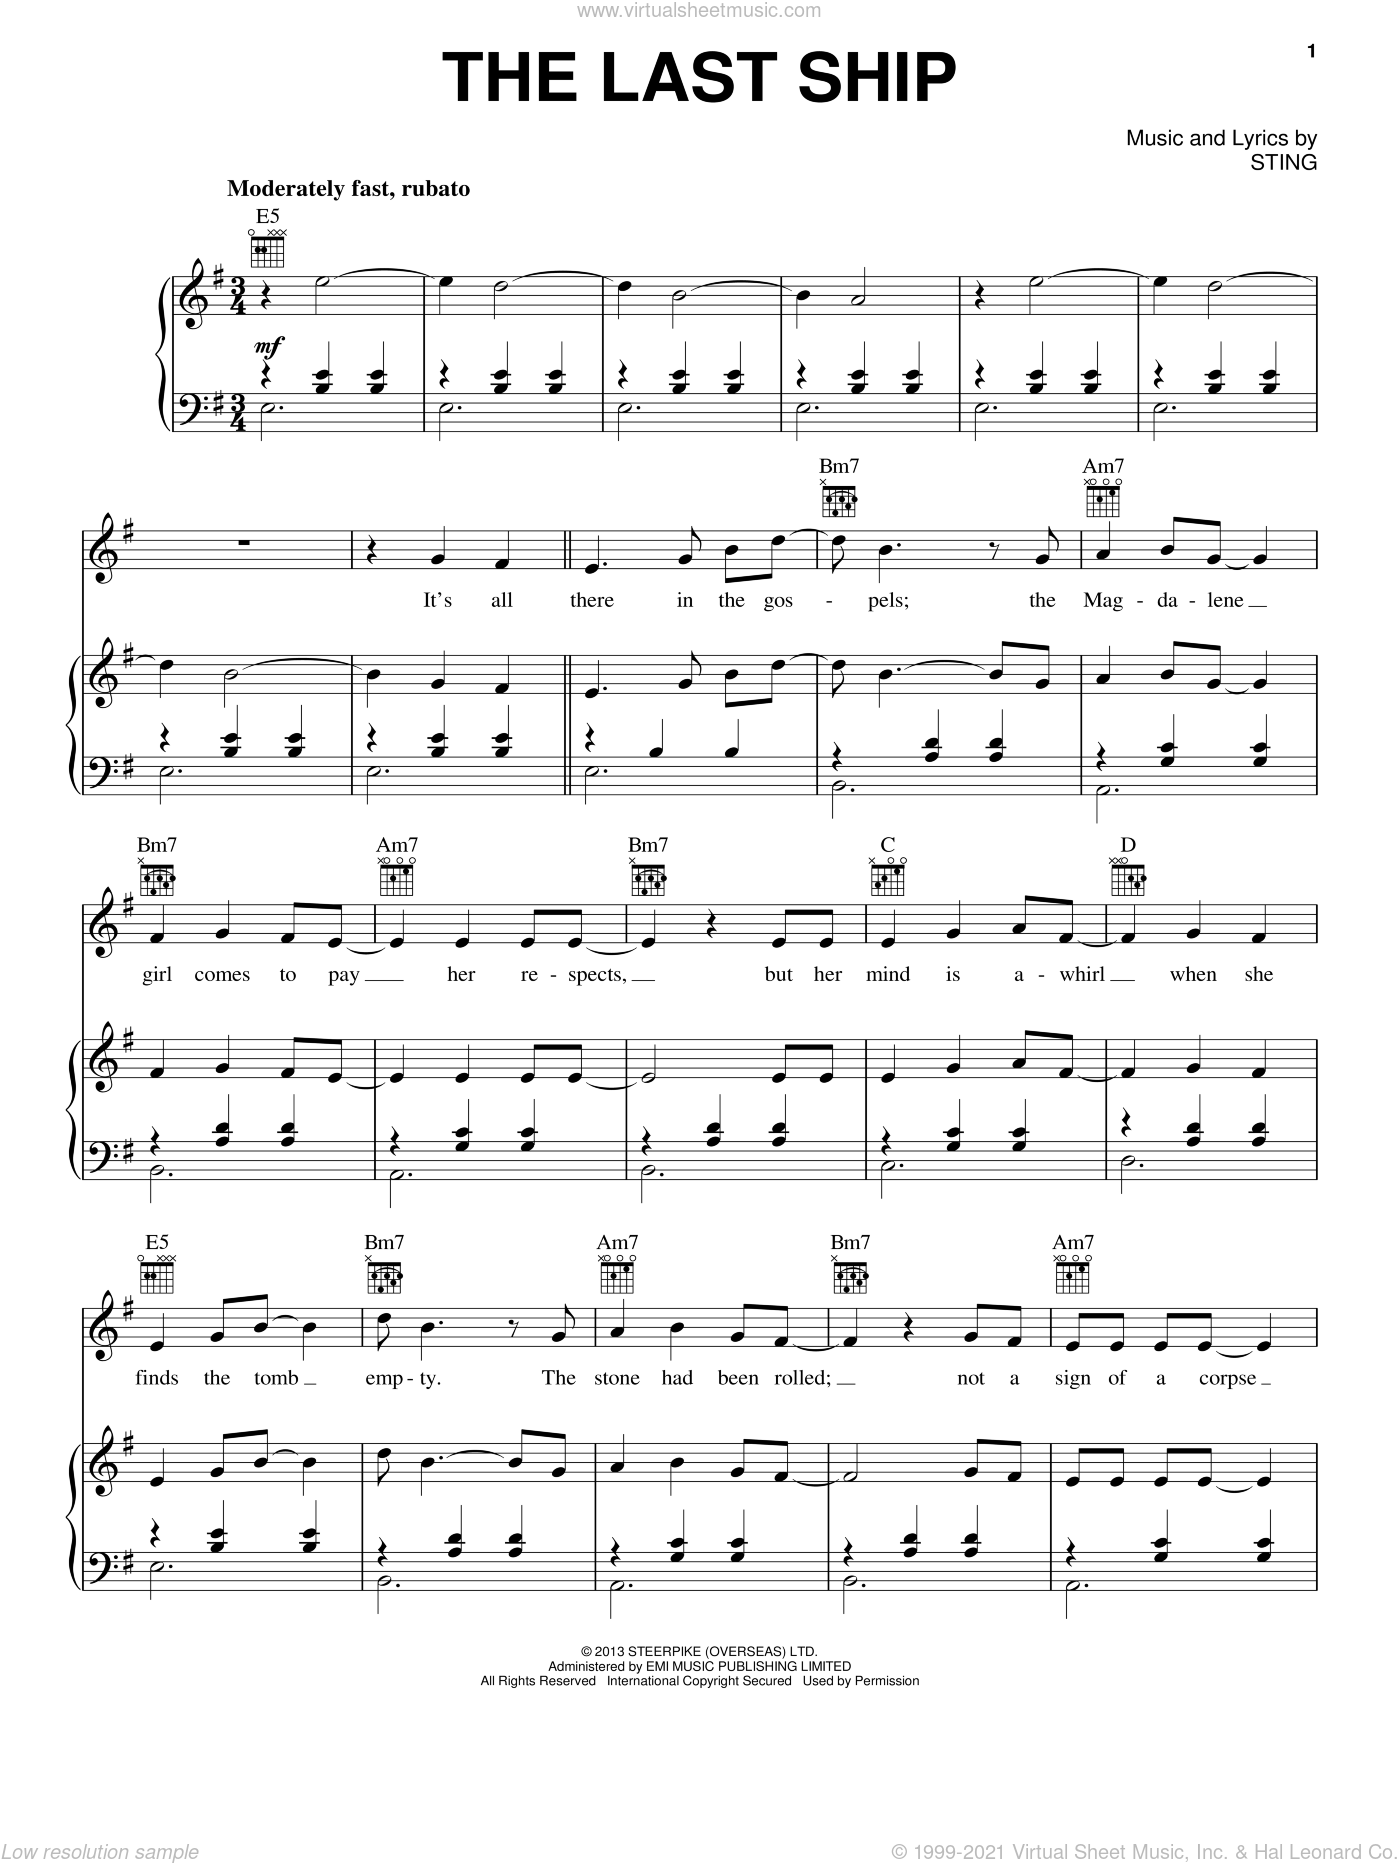 The Last Ship sheet music for voice, piano or guitar by Sting, intermediate. Score Image Preview.